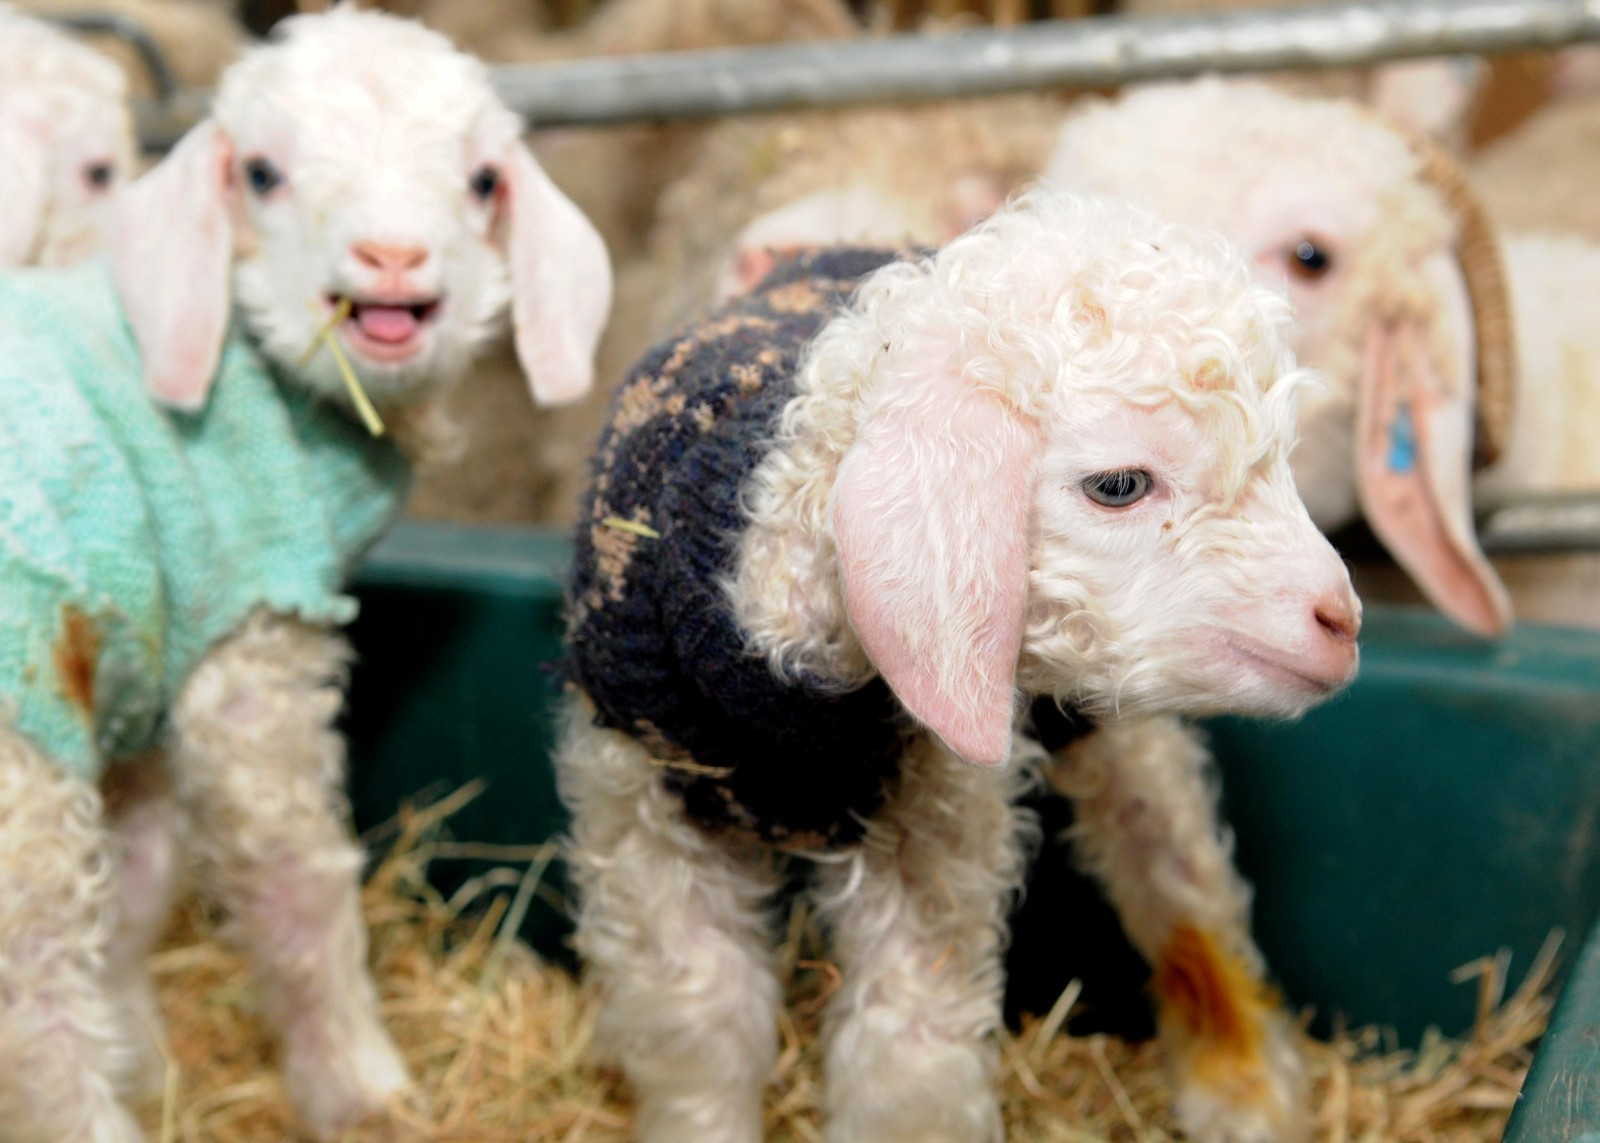 Frilly goats gruff Baby goats keep warm dressed in woolly